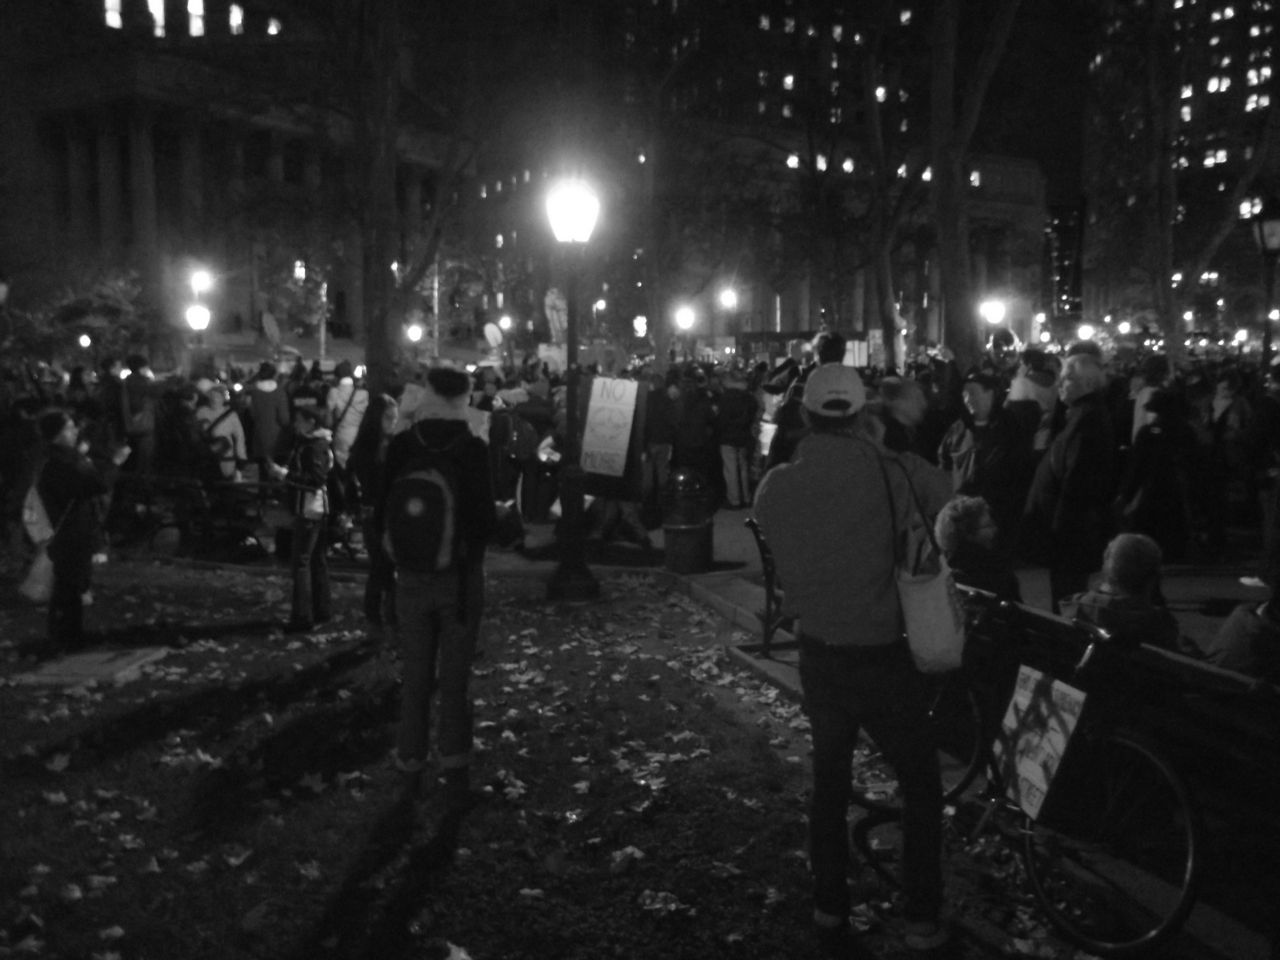 Occupy Wall Street. These photos were taken at the large Foley Square rally on November 17th, which was declared a Day of Action by the Occupy movement. Police estimates put the turnout at around 32,500 people in New York. The shots give an impression of that kind of incredible size. By Tumblr user danielmcbatman. Photo 2 of 3. Posted 14 February 2012. Full photoset: http://bit.ly/IH6QQK